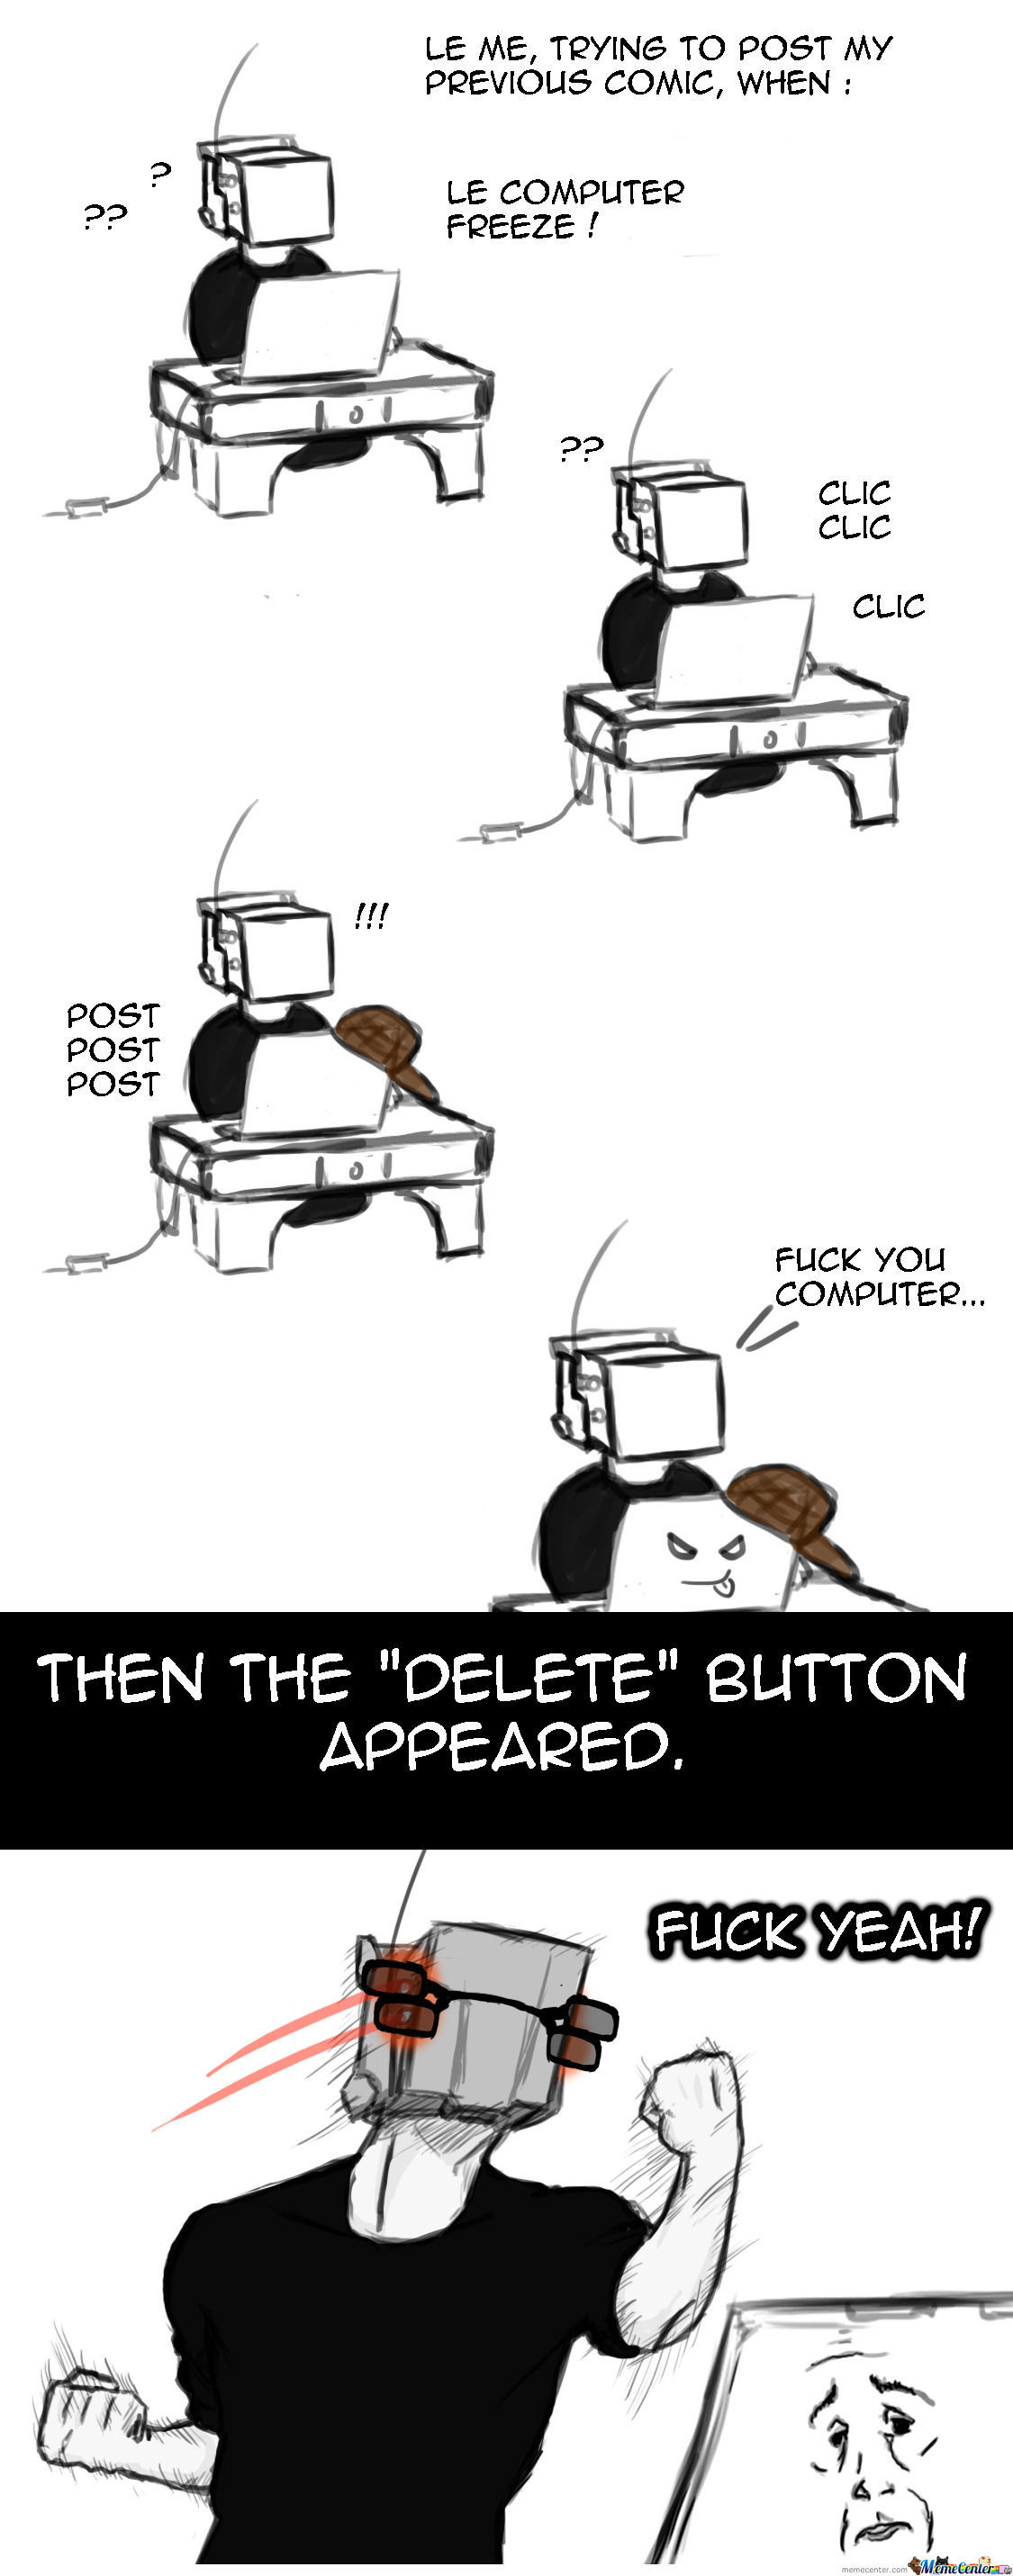 Scumbag Computer Vs New Delete Button